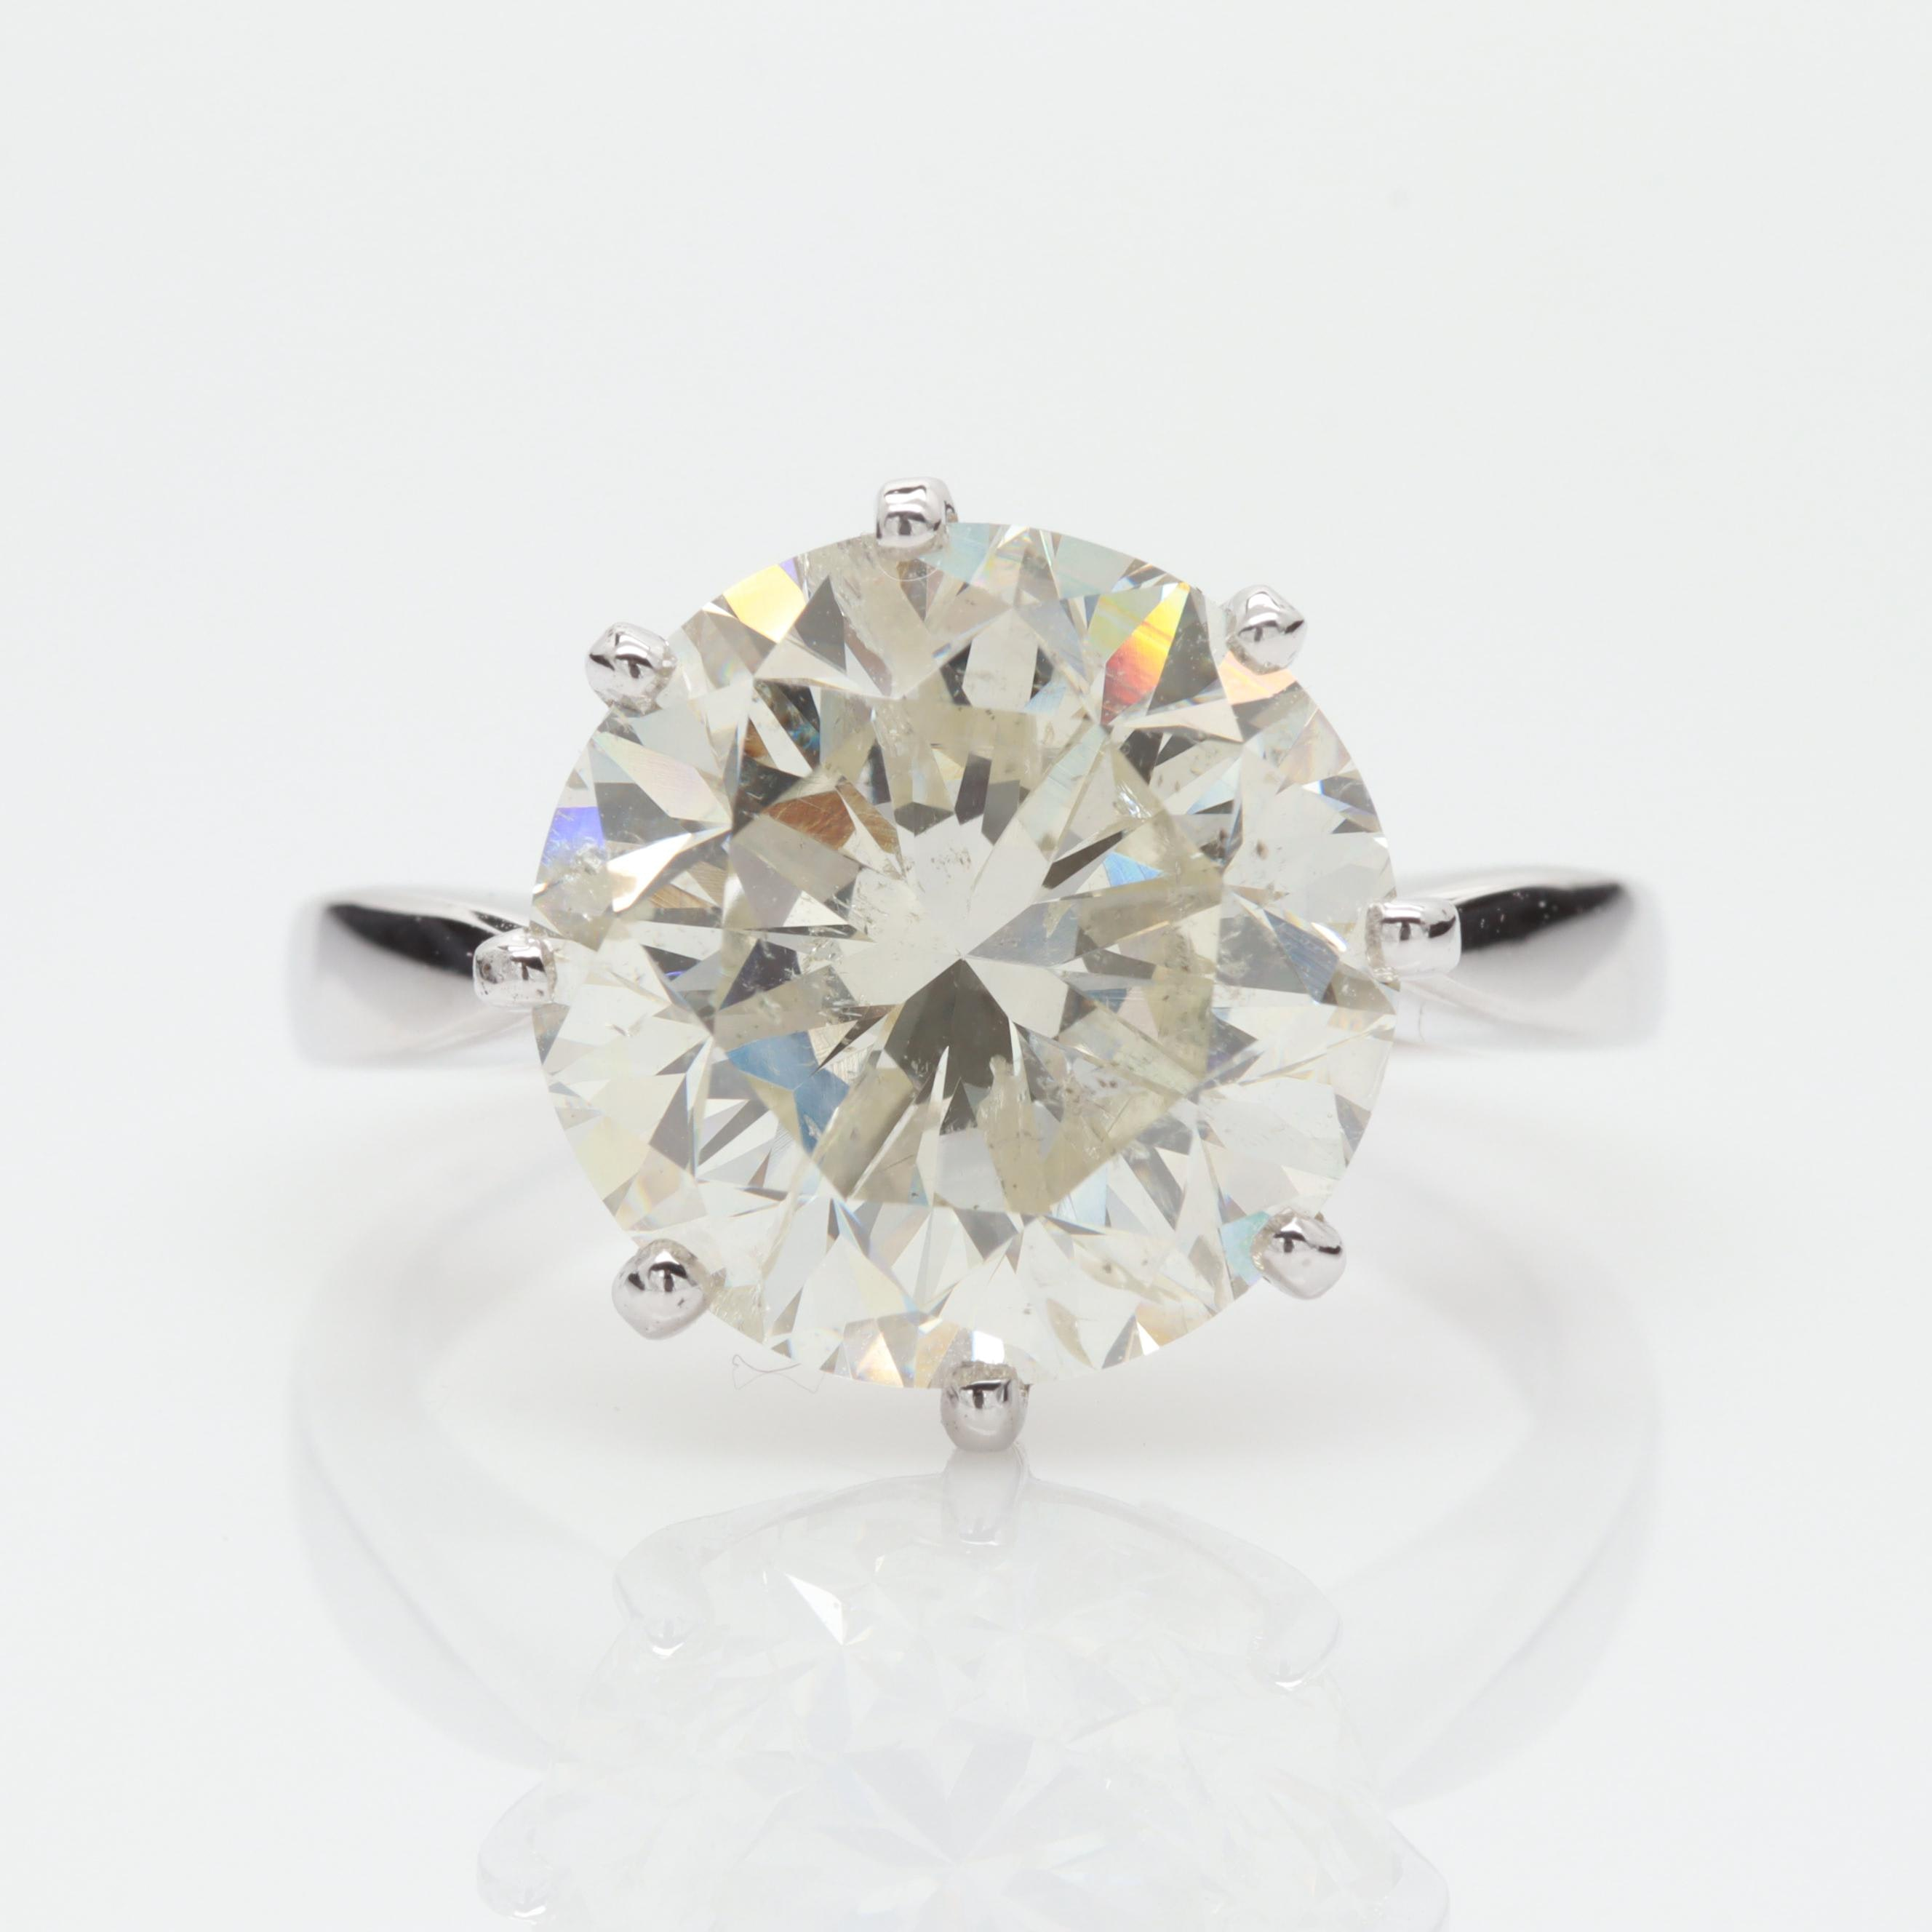 18K White Gold 7.00 CT Diamond Solitaire Ring